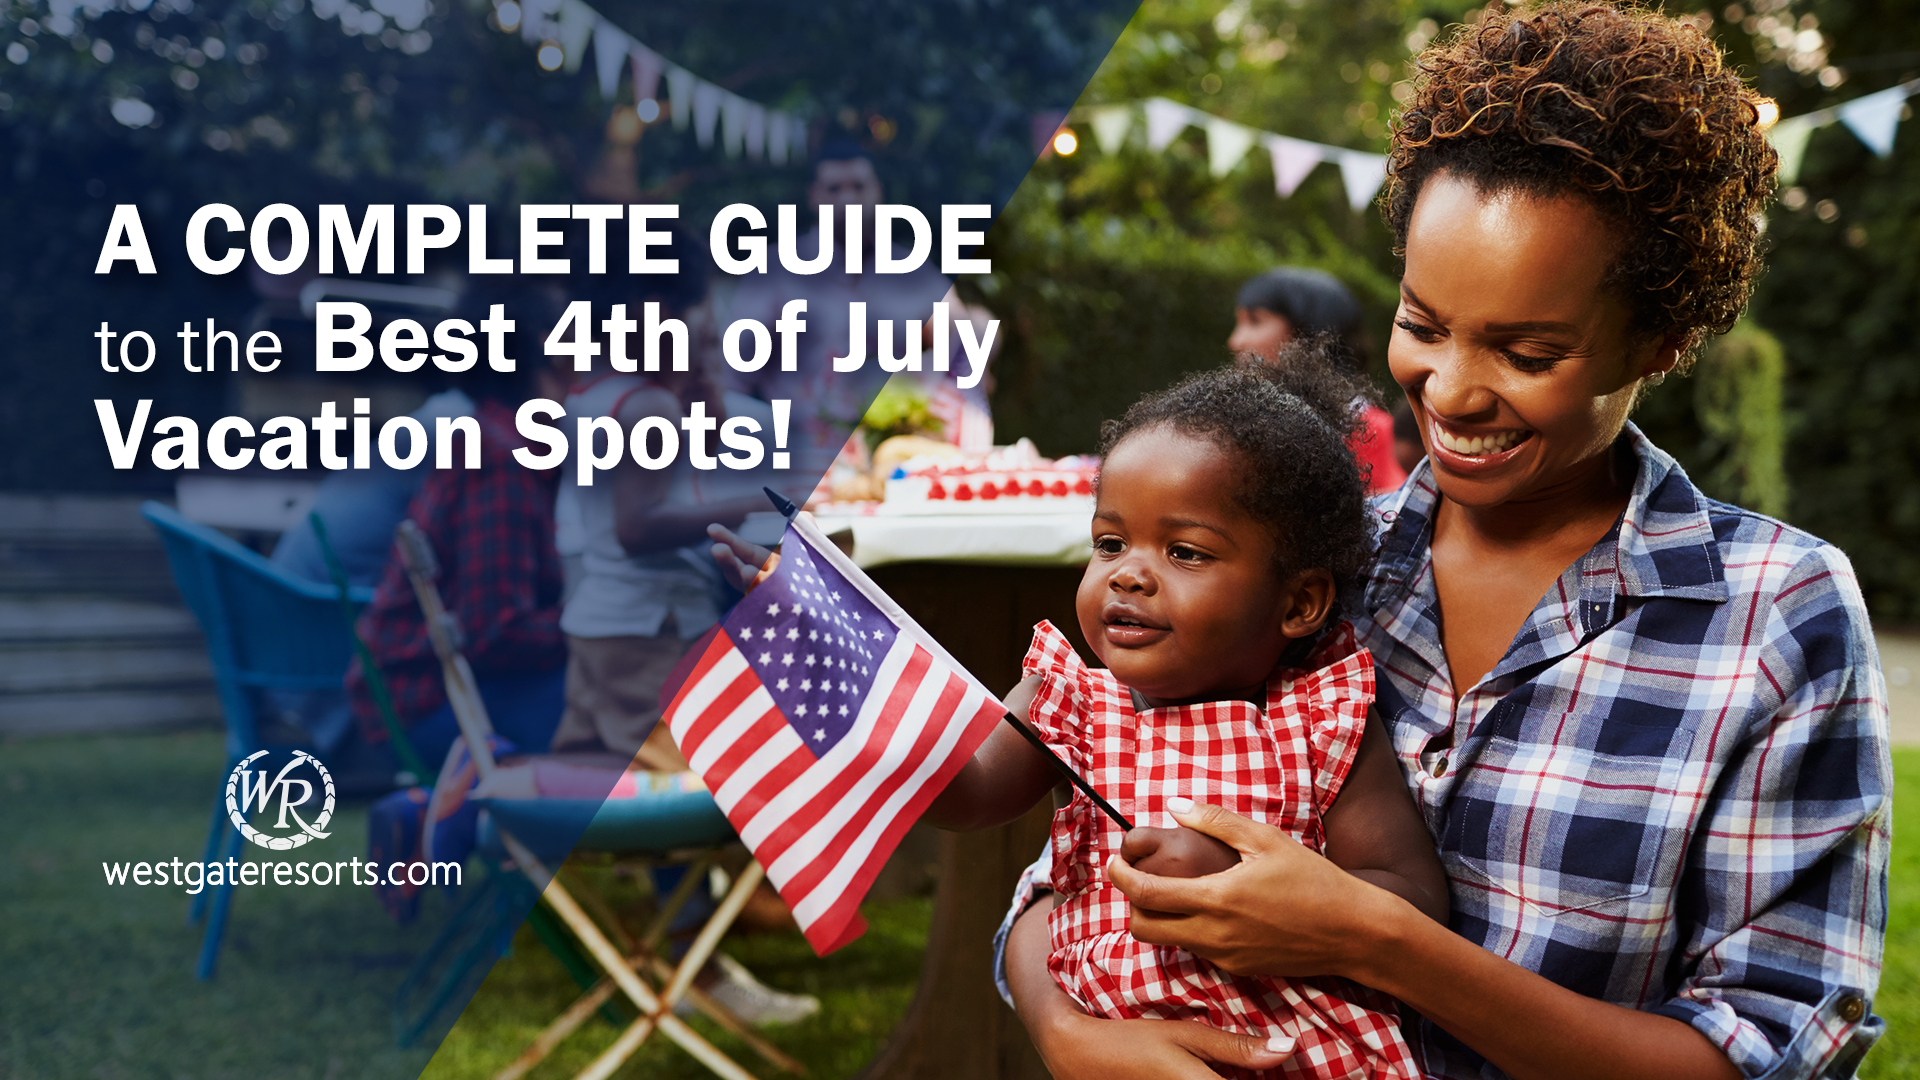 Best 4th of July Vacation Spots | 4th of July Vacation Ideas | Westgate Resorts